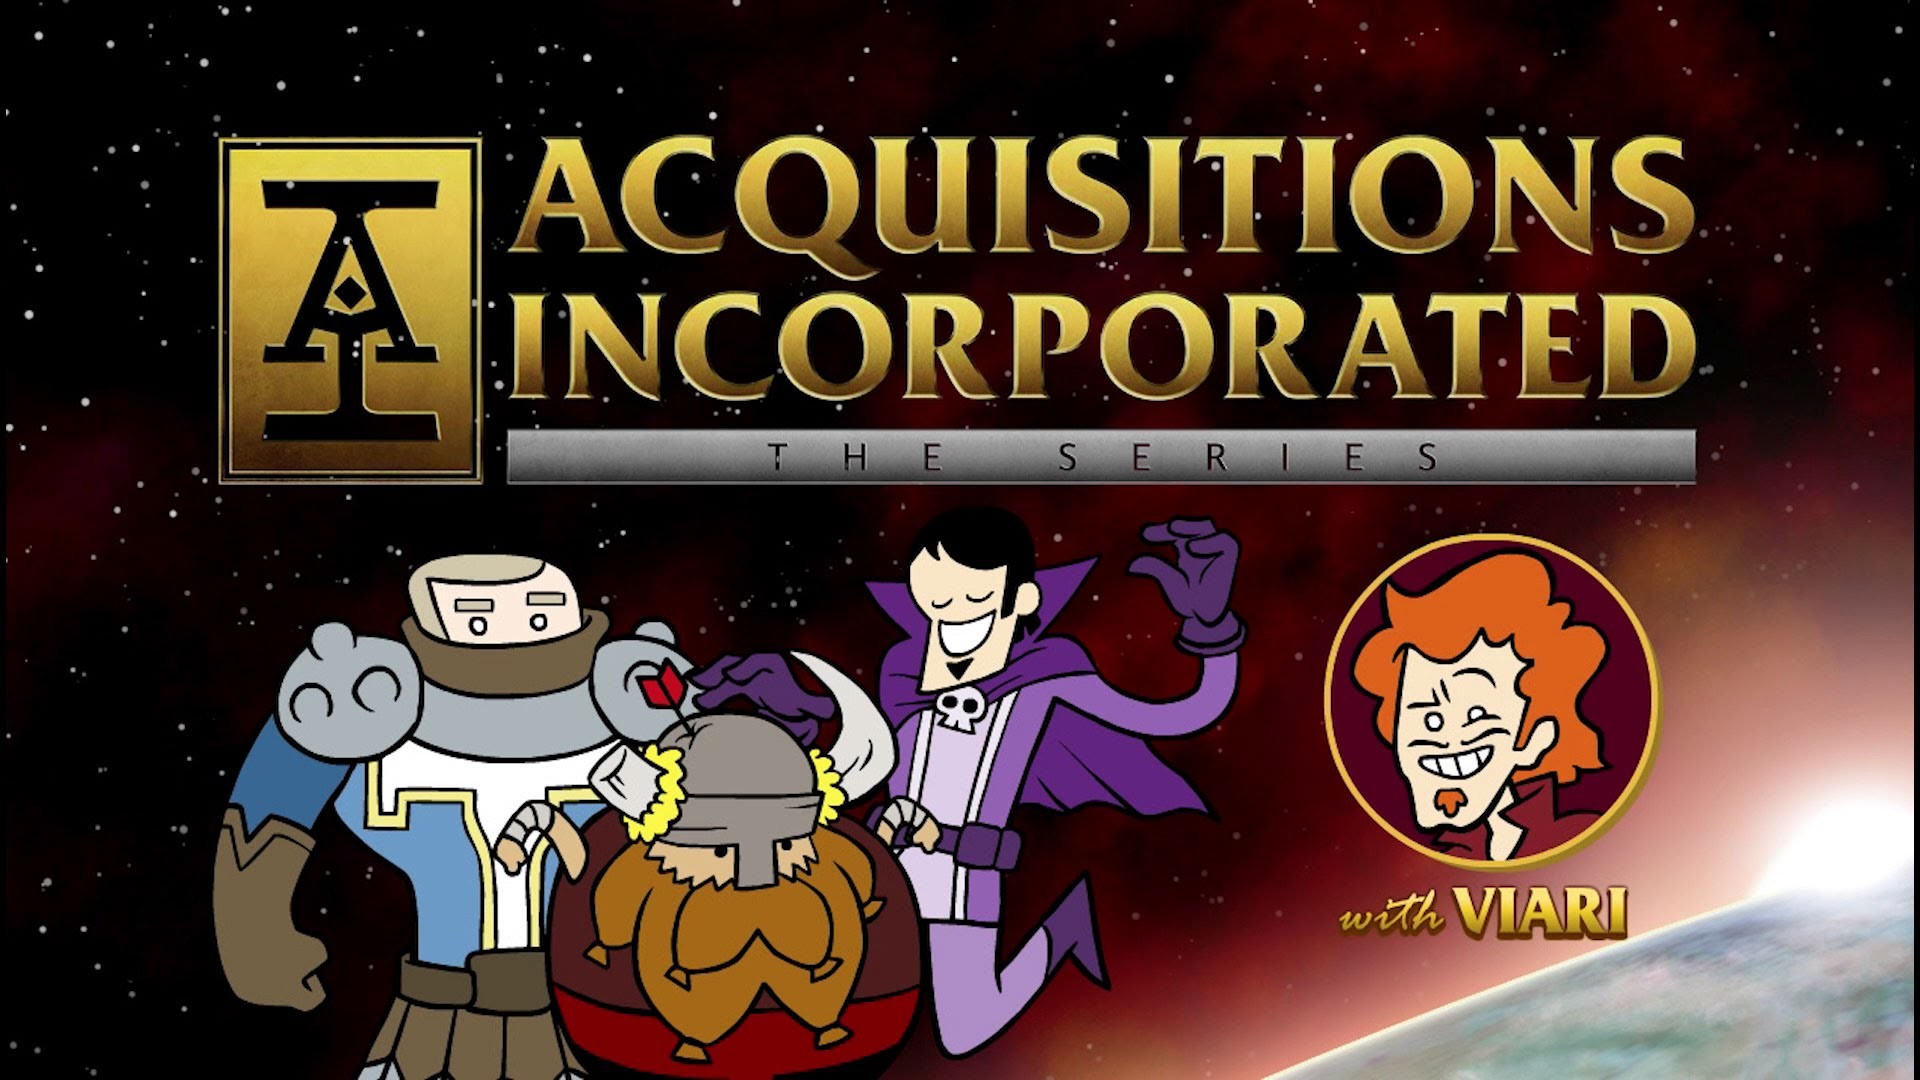 1920x1080 Penny Arcade Begin New Acquisitions Incorporated D&D Series! – OnTableTop –  Home of Beasts of War